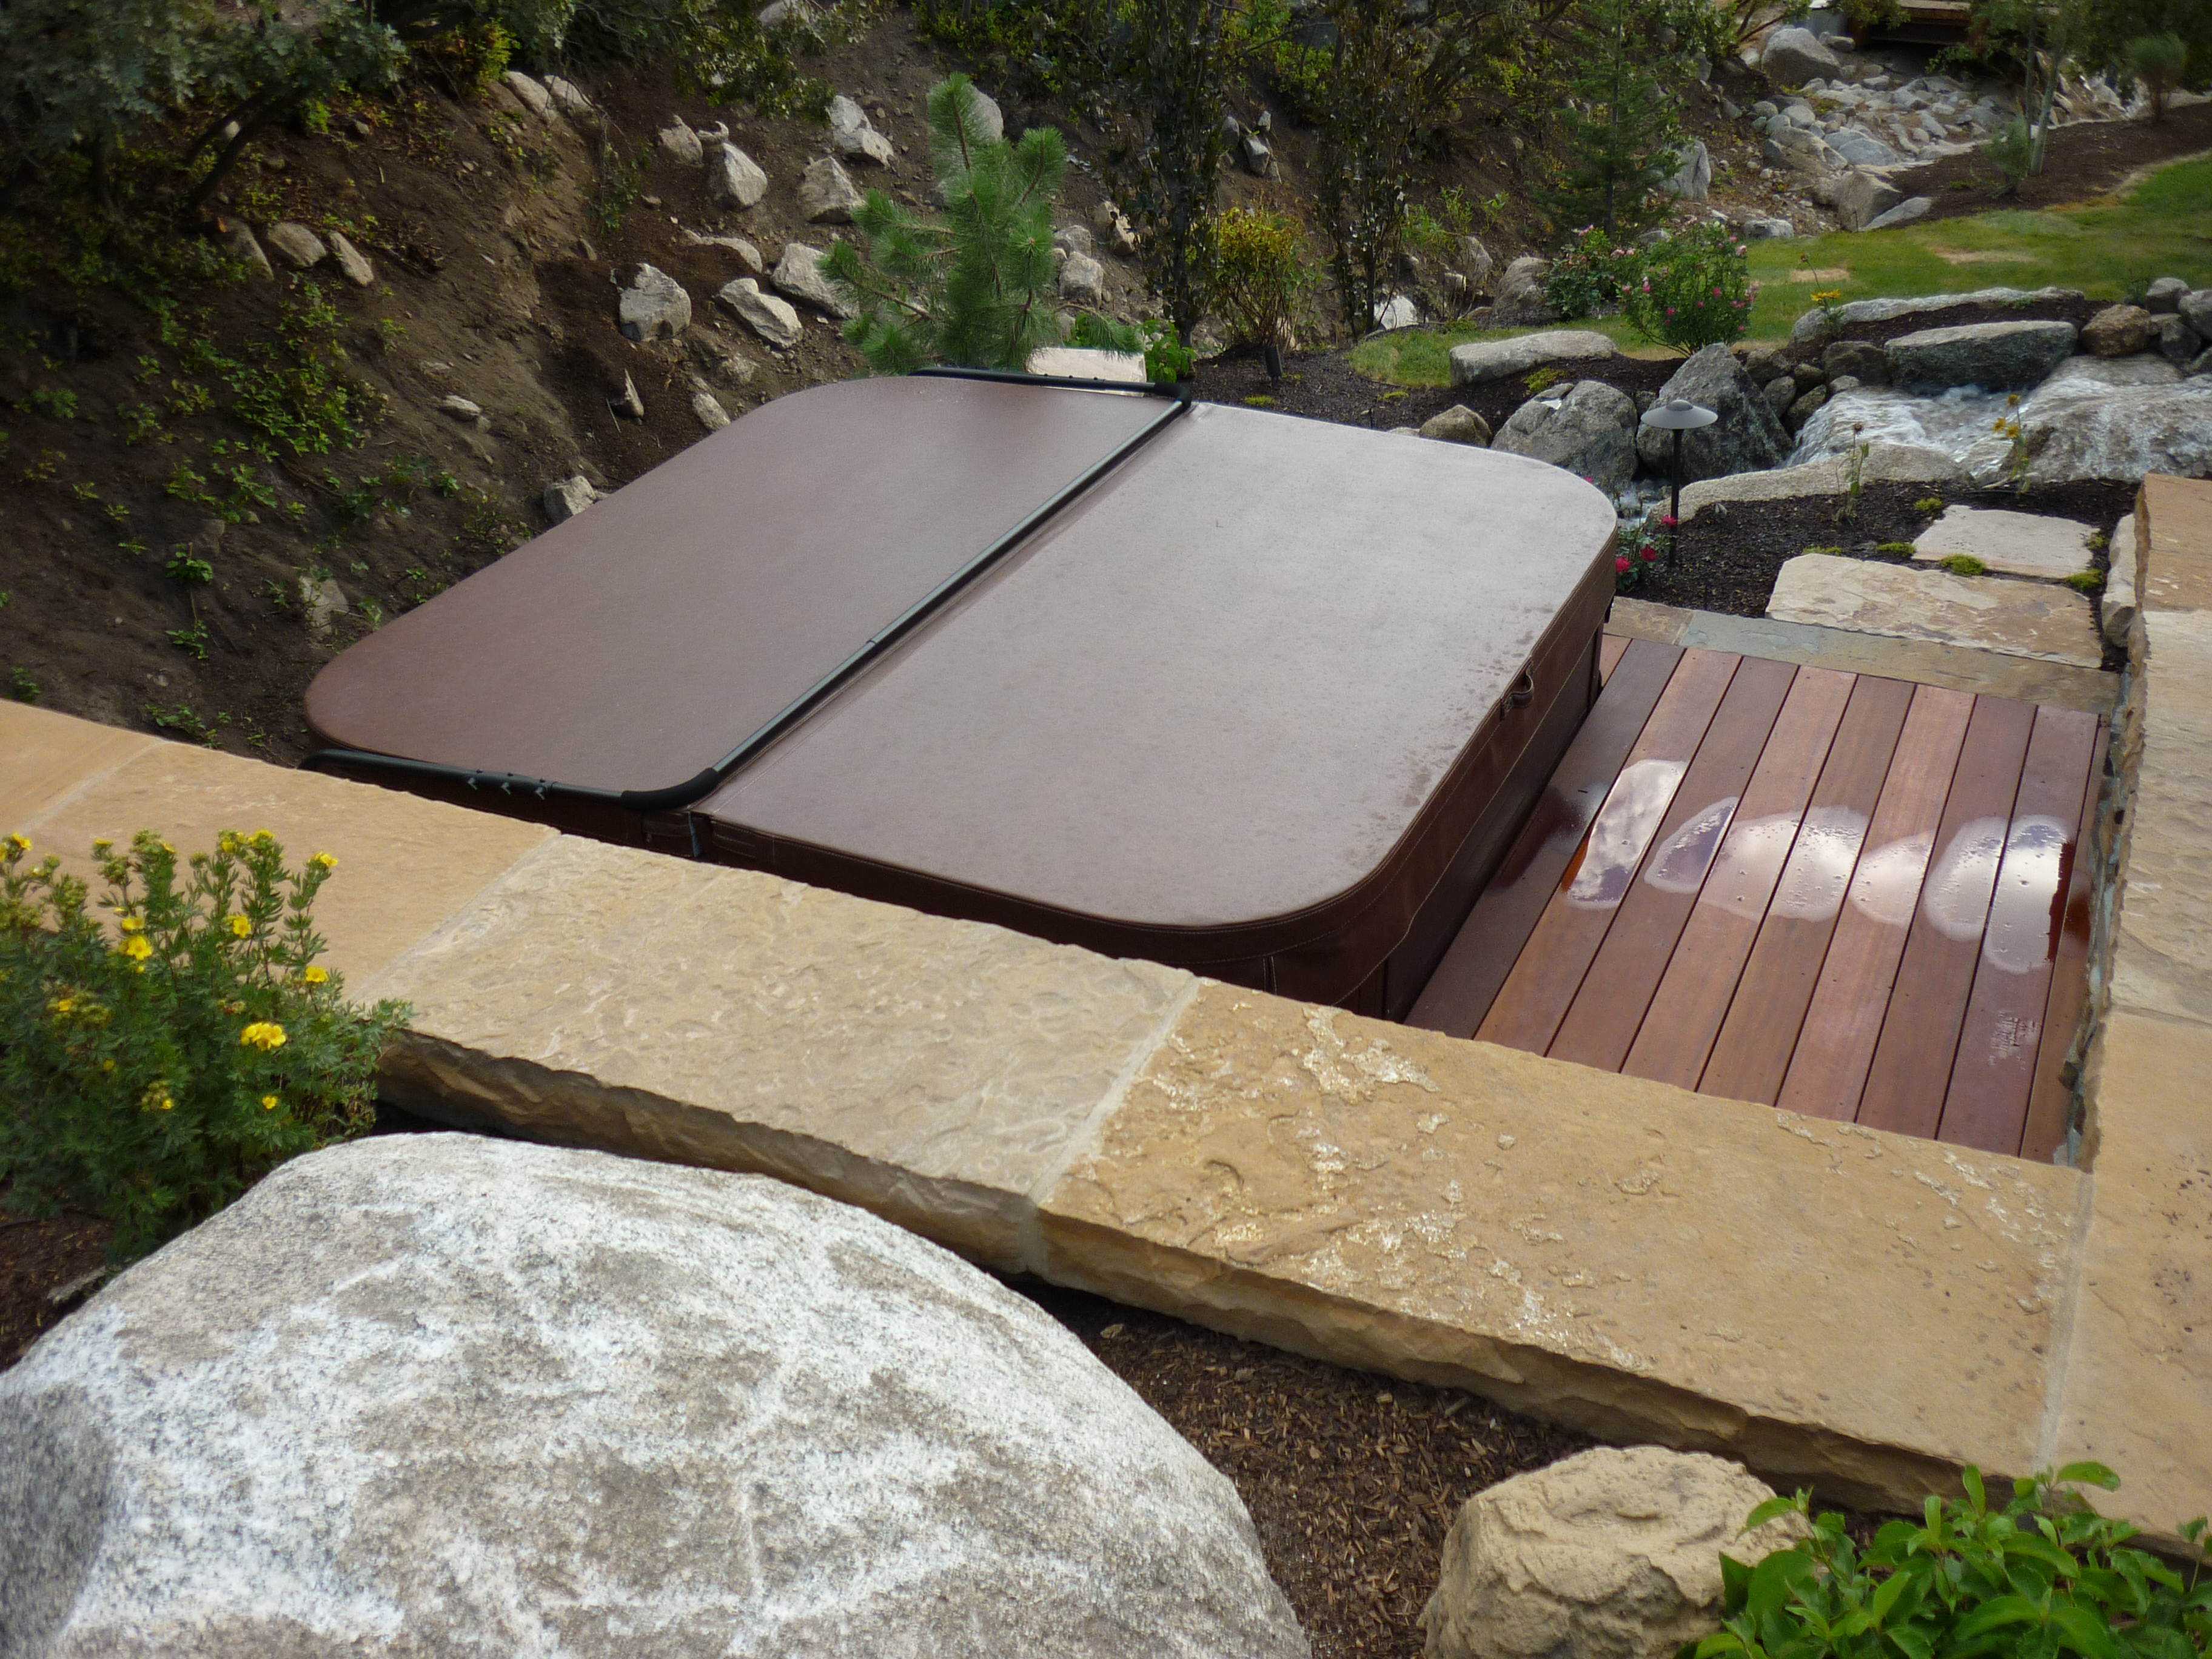 Hot tub landscaping ideas joy studio design gallery for Hot tub landscape design